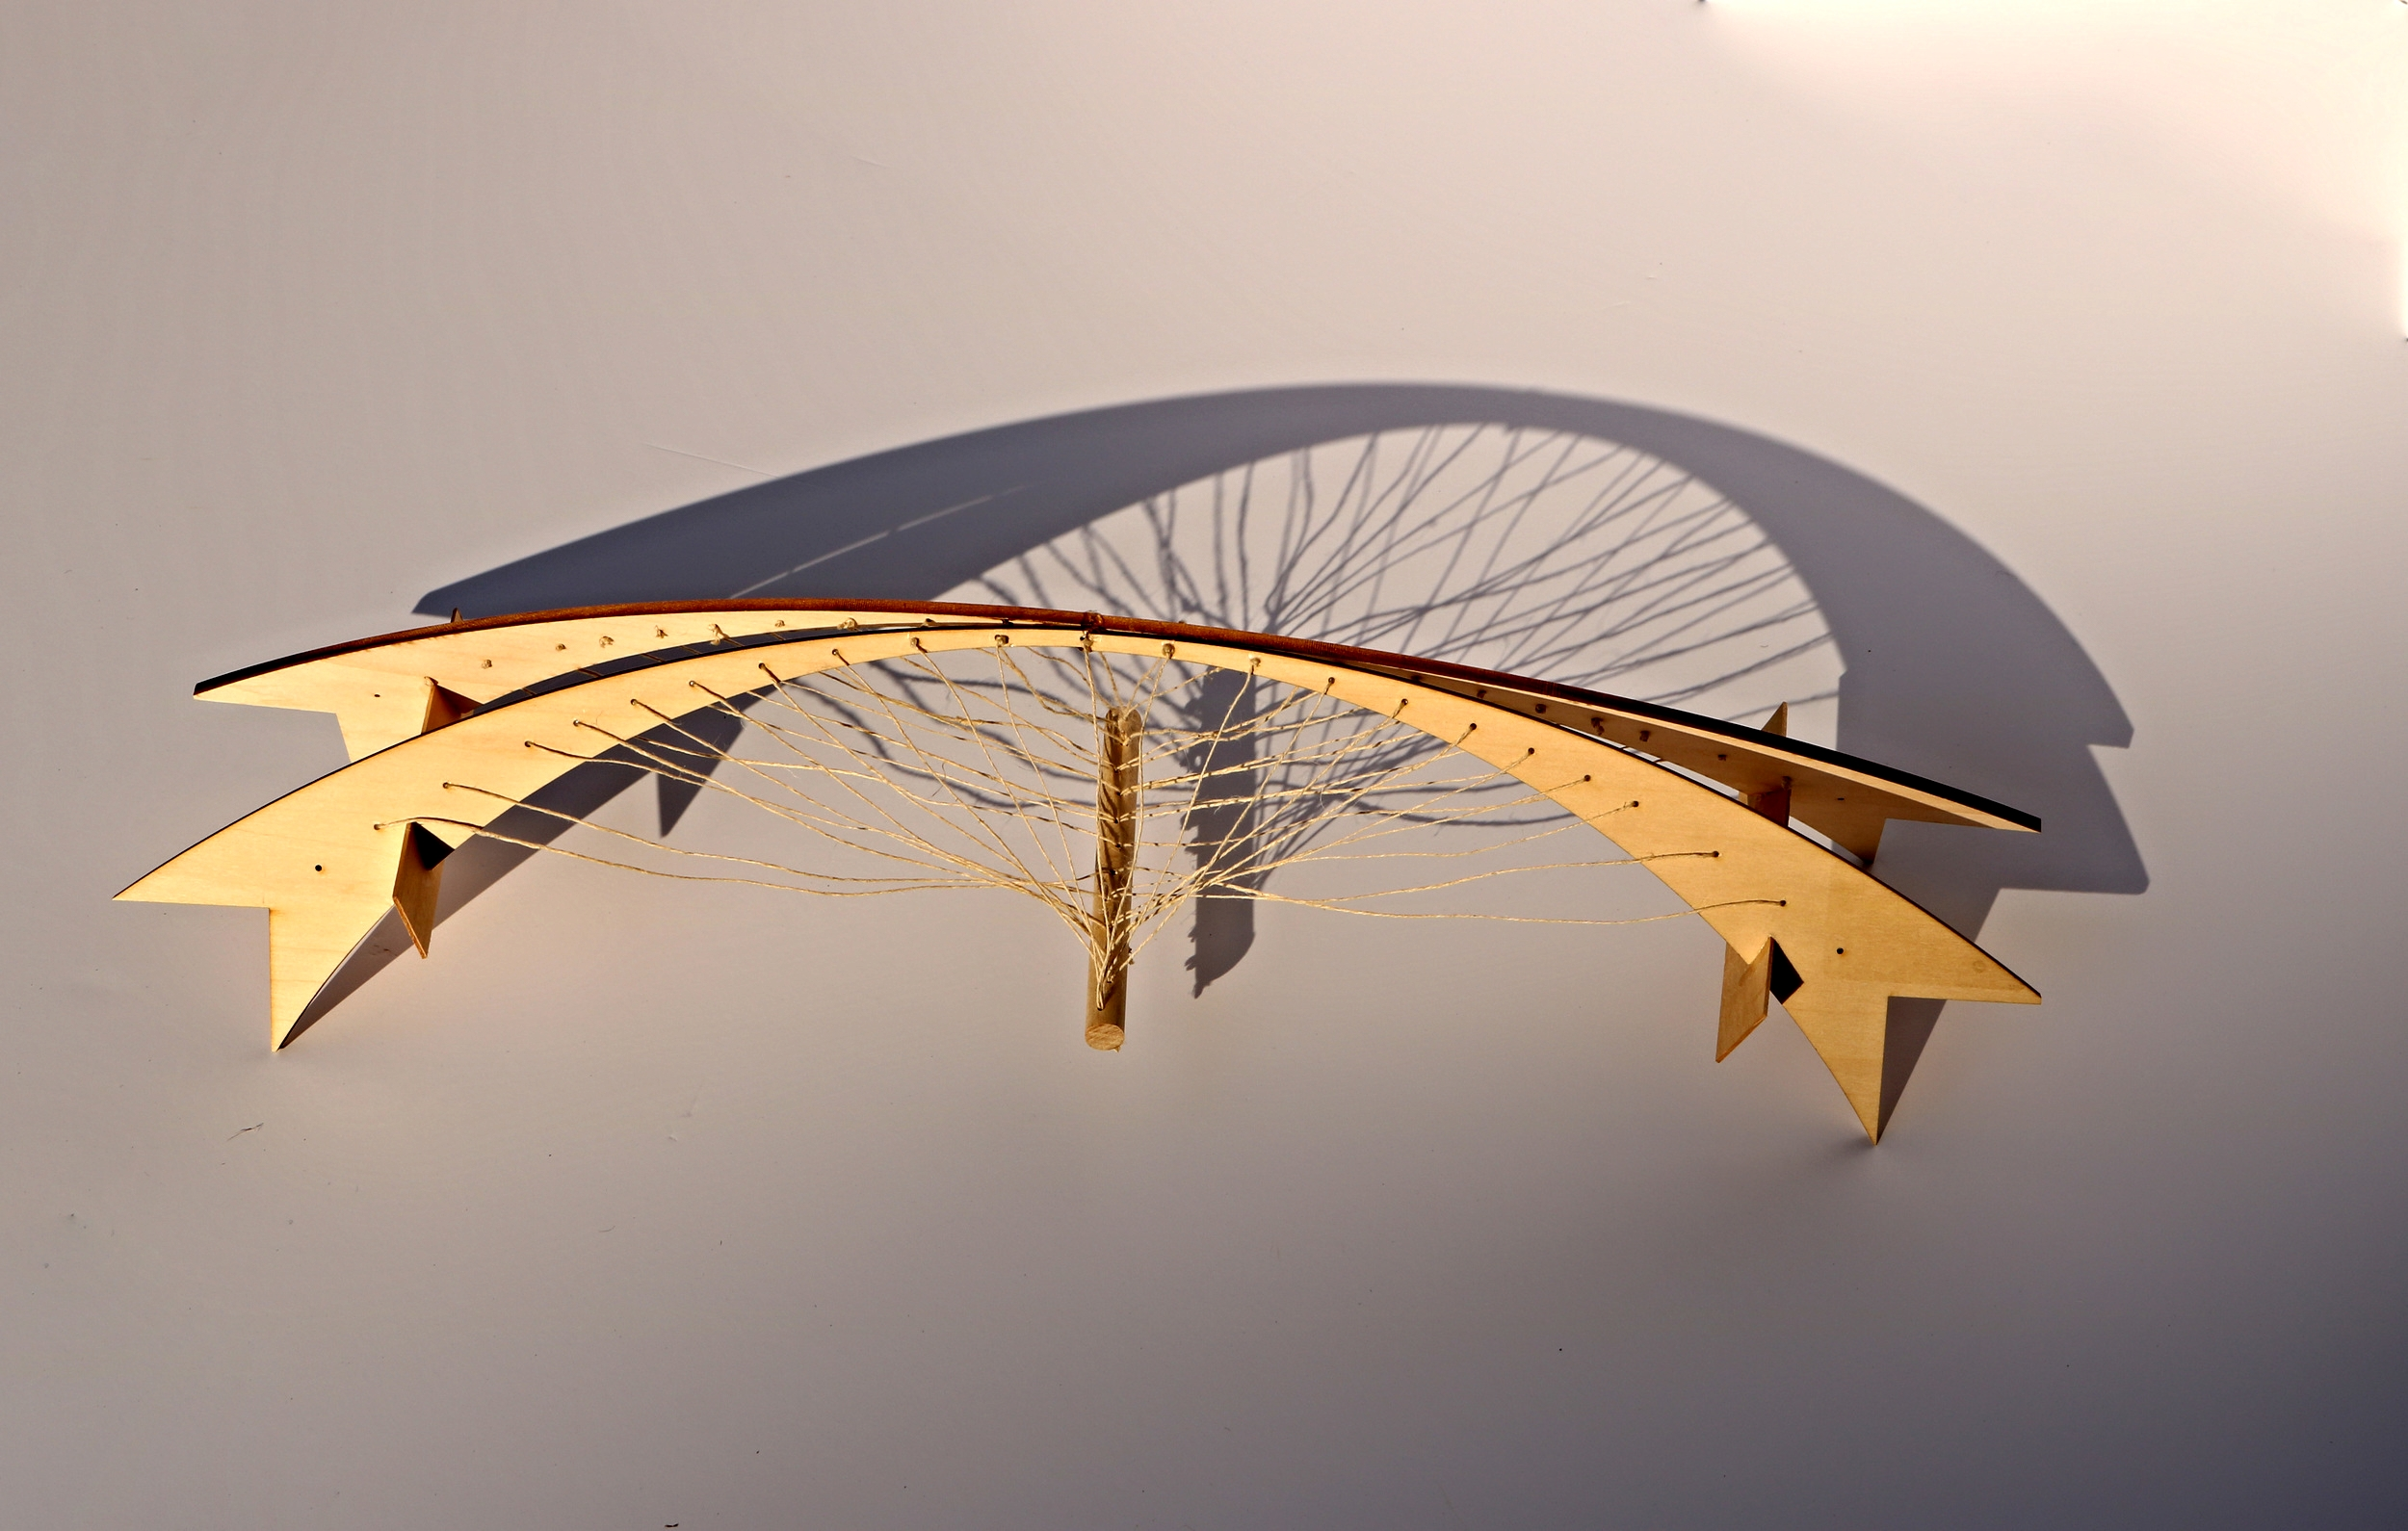 Basswood Tensile Bridge. Supported over 198 times its own weight.